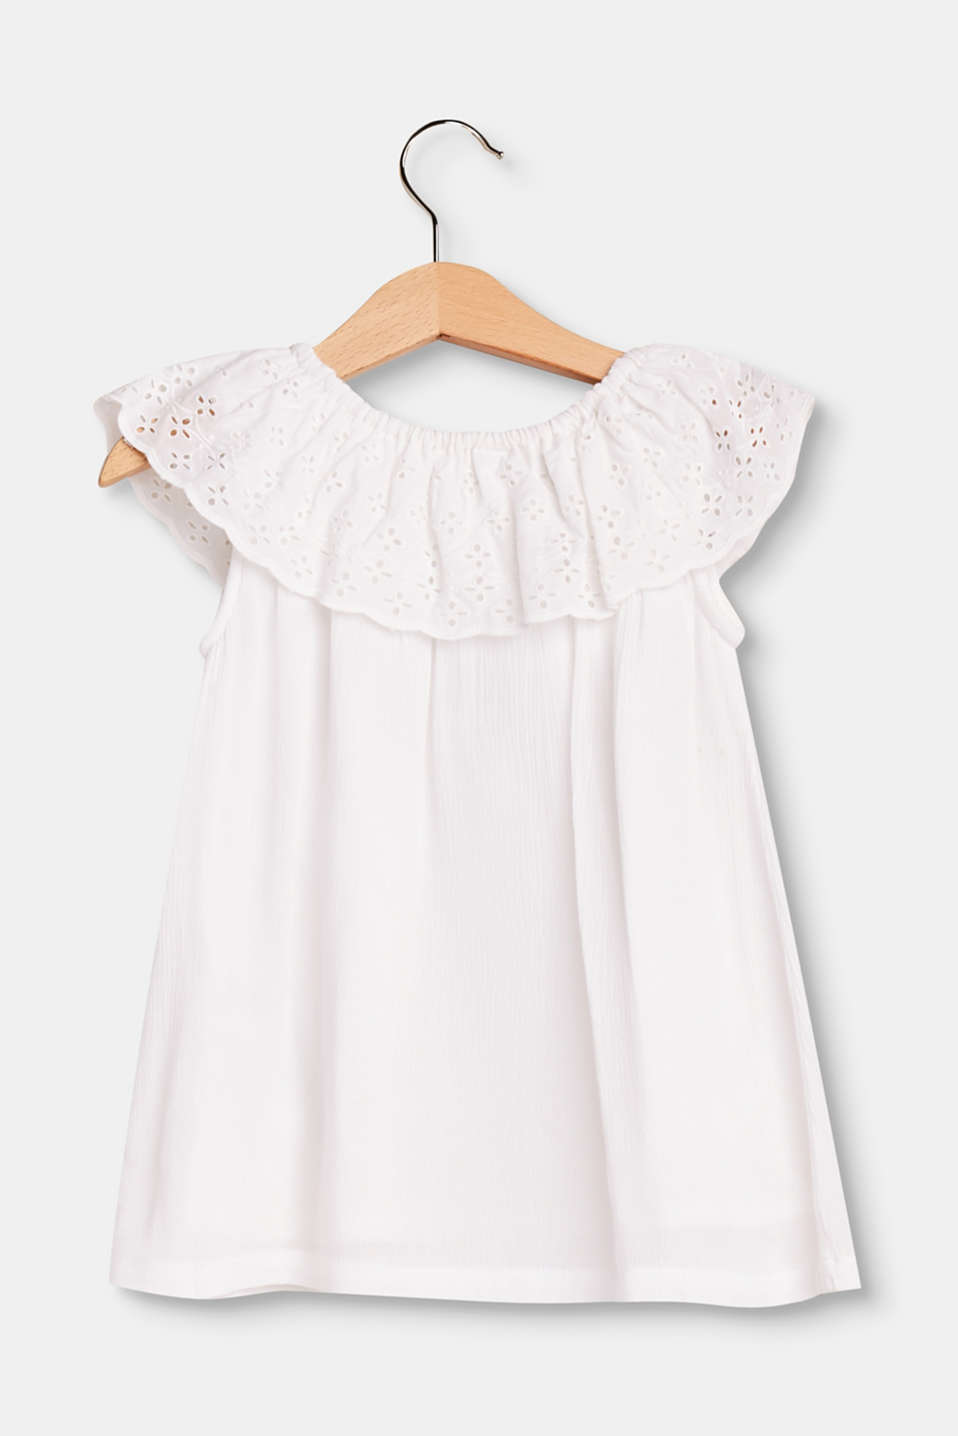 Soft Carmen top with broderie anglaise